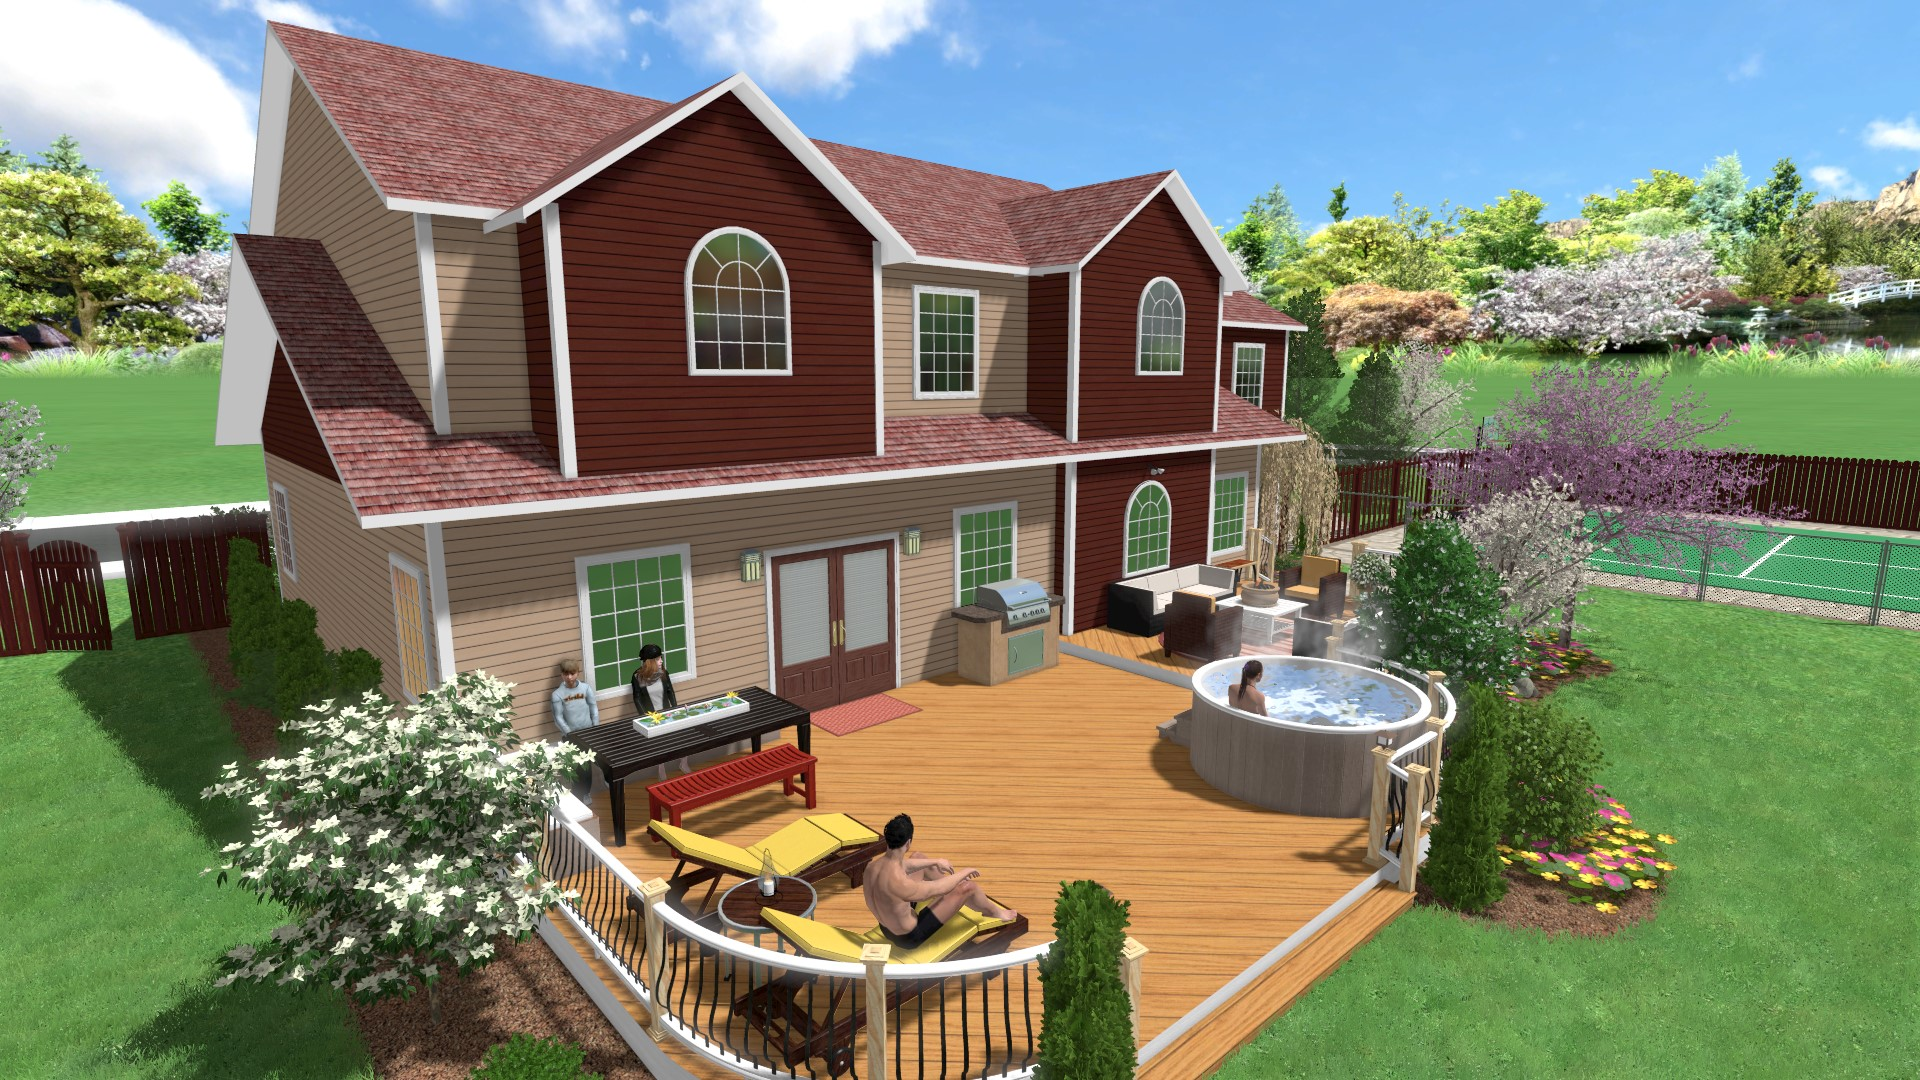 Add 3D People to your Landscape Designs